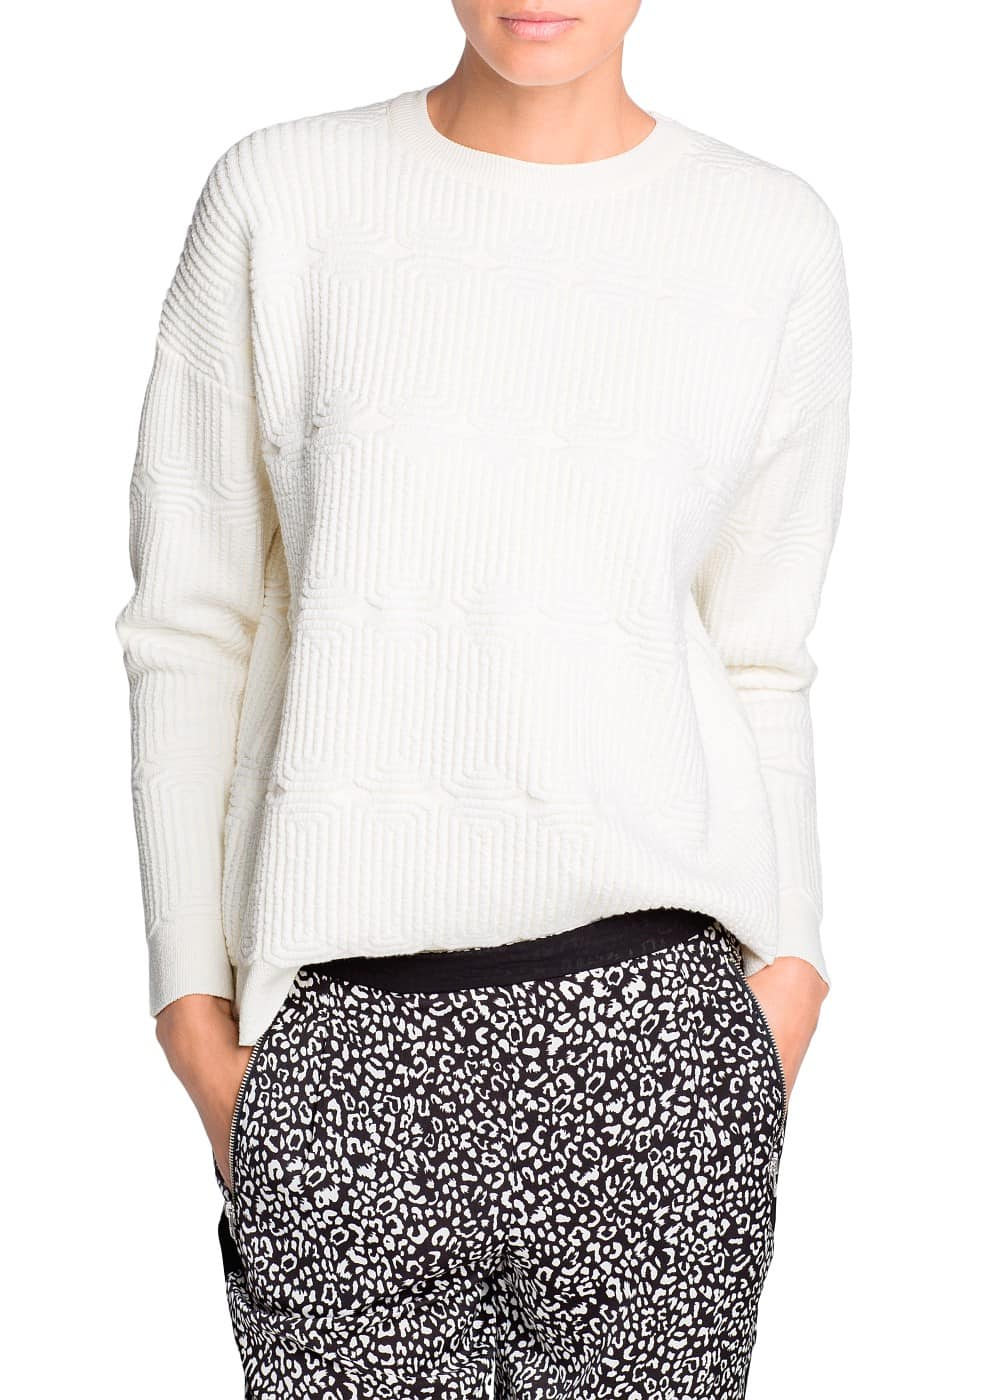 Cotton-blend jacquard sweater | MANGO